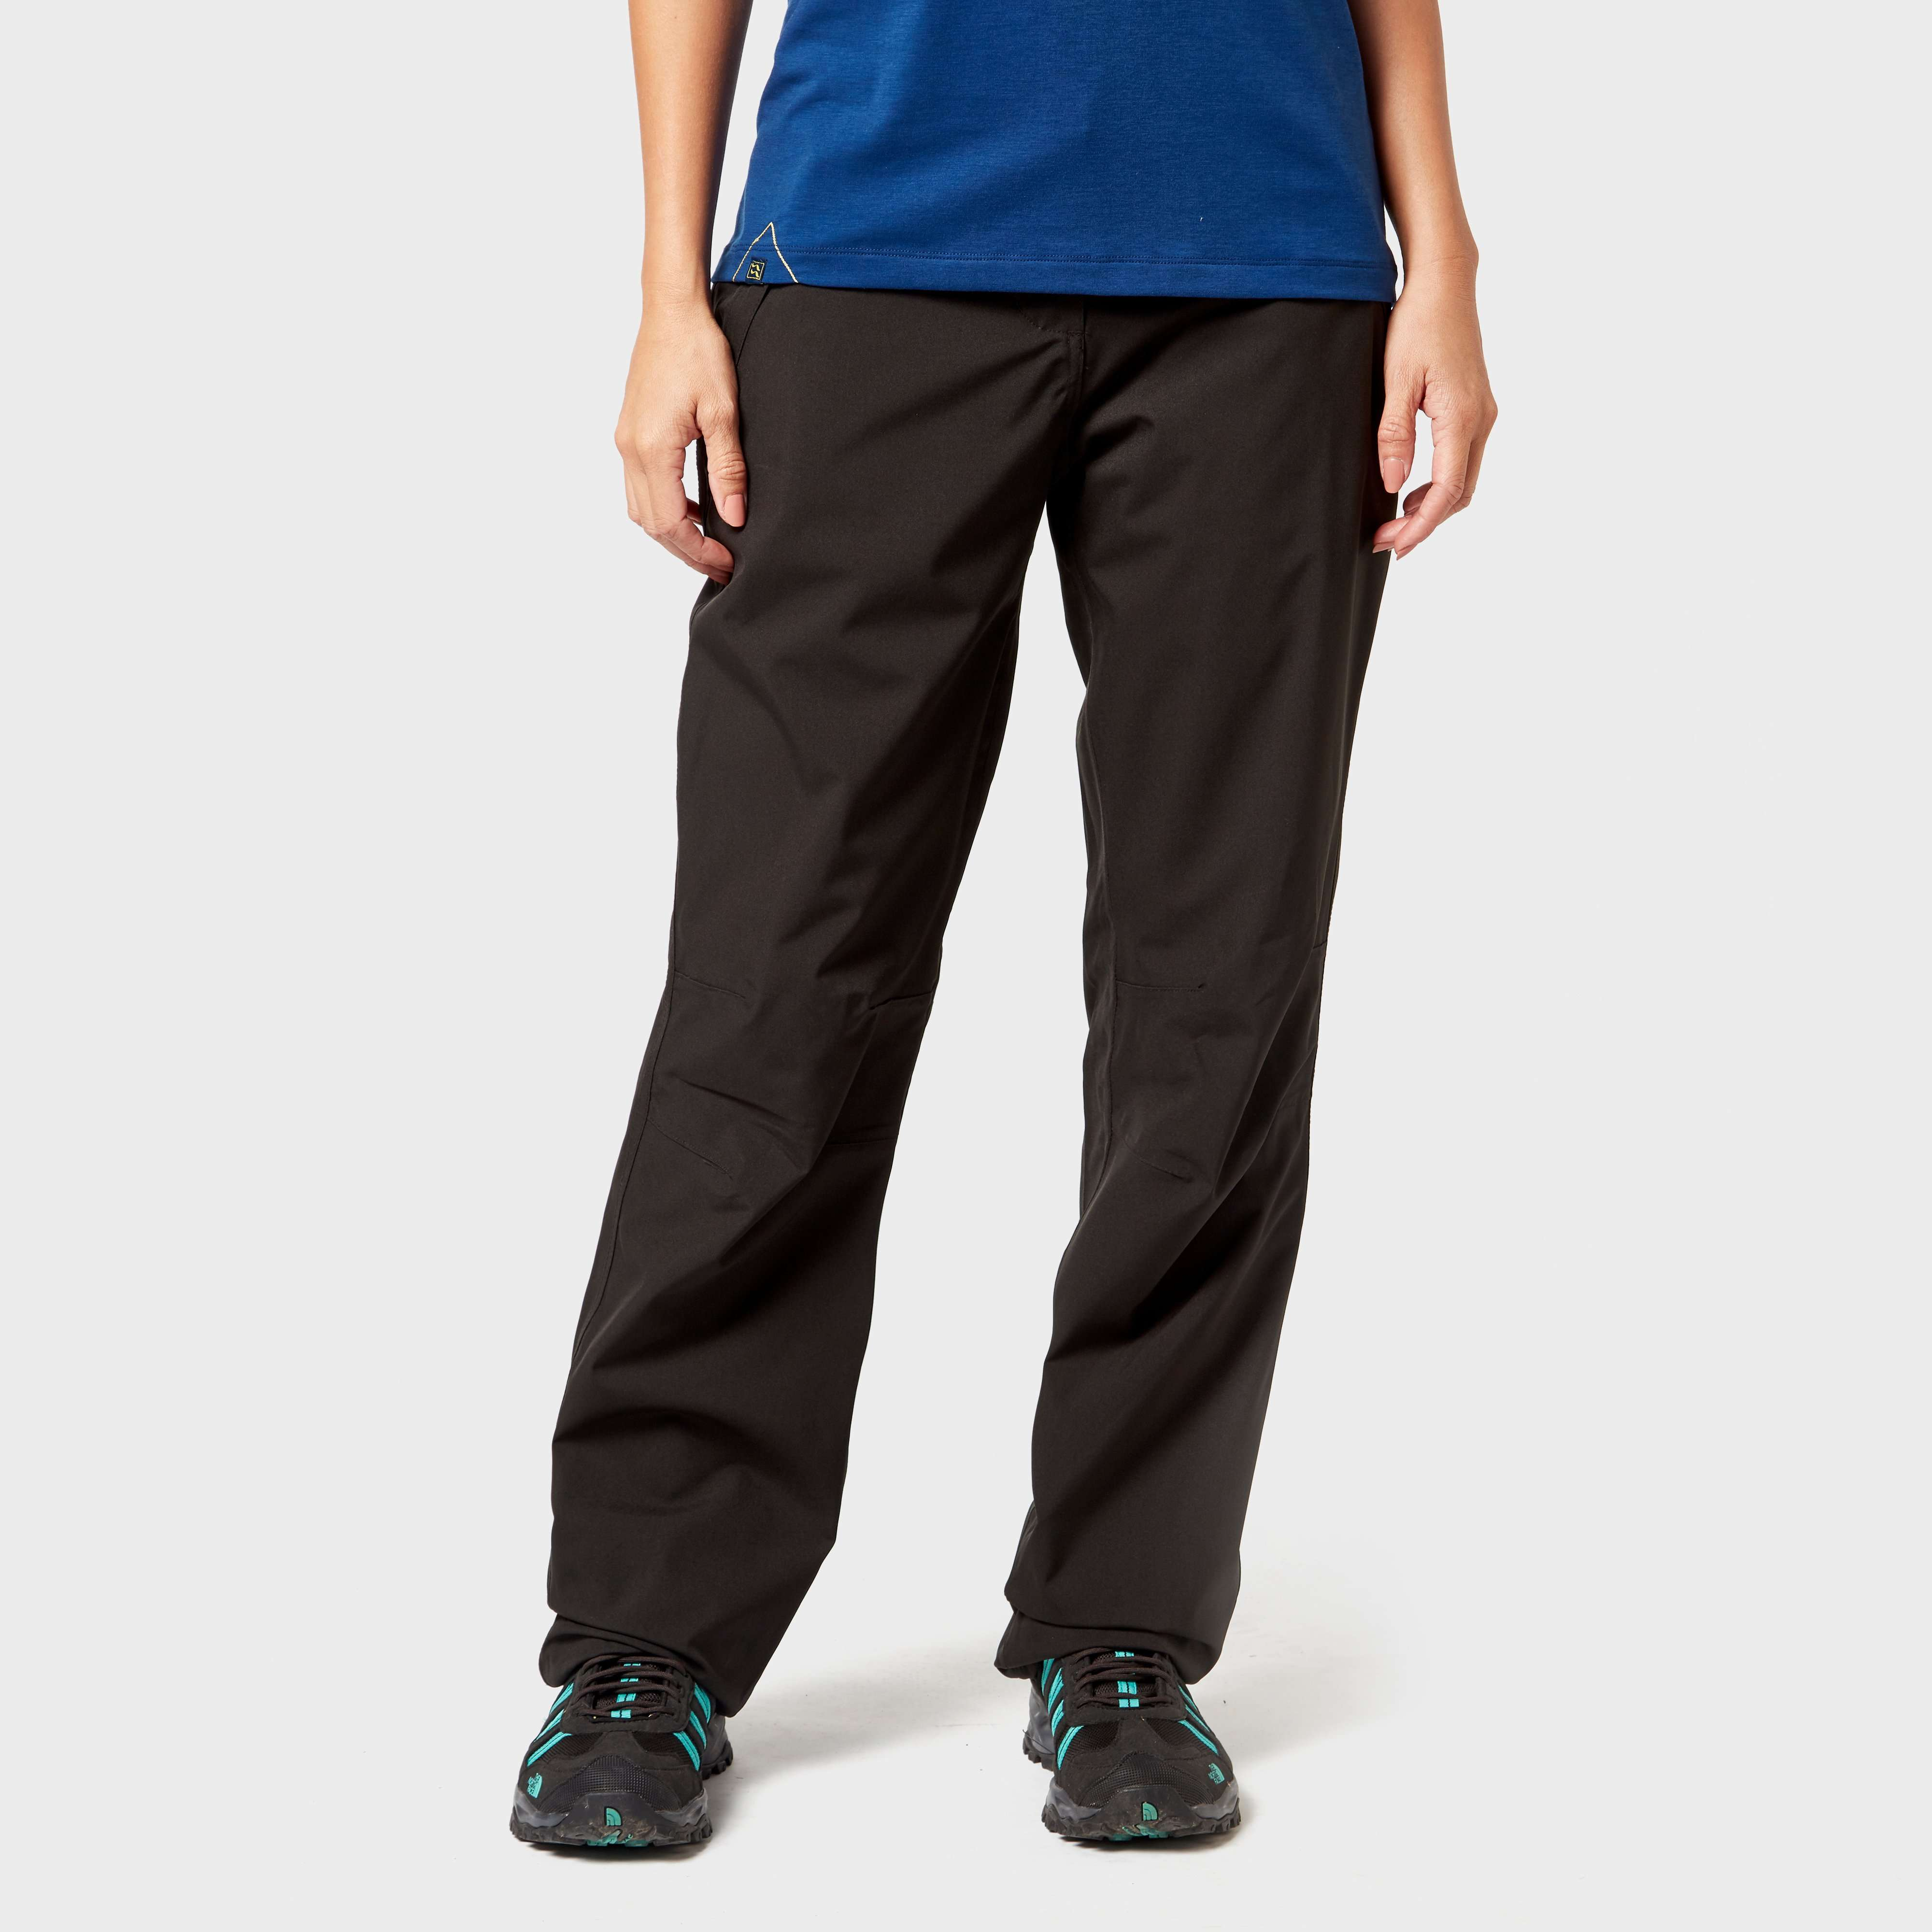 CRAGHOPPERS Women's Airedale Trousers